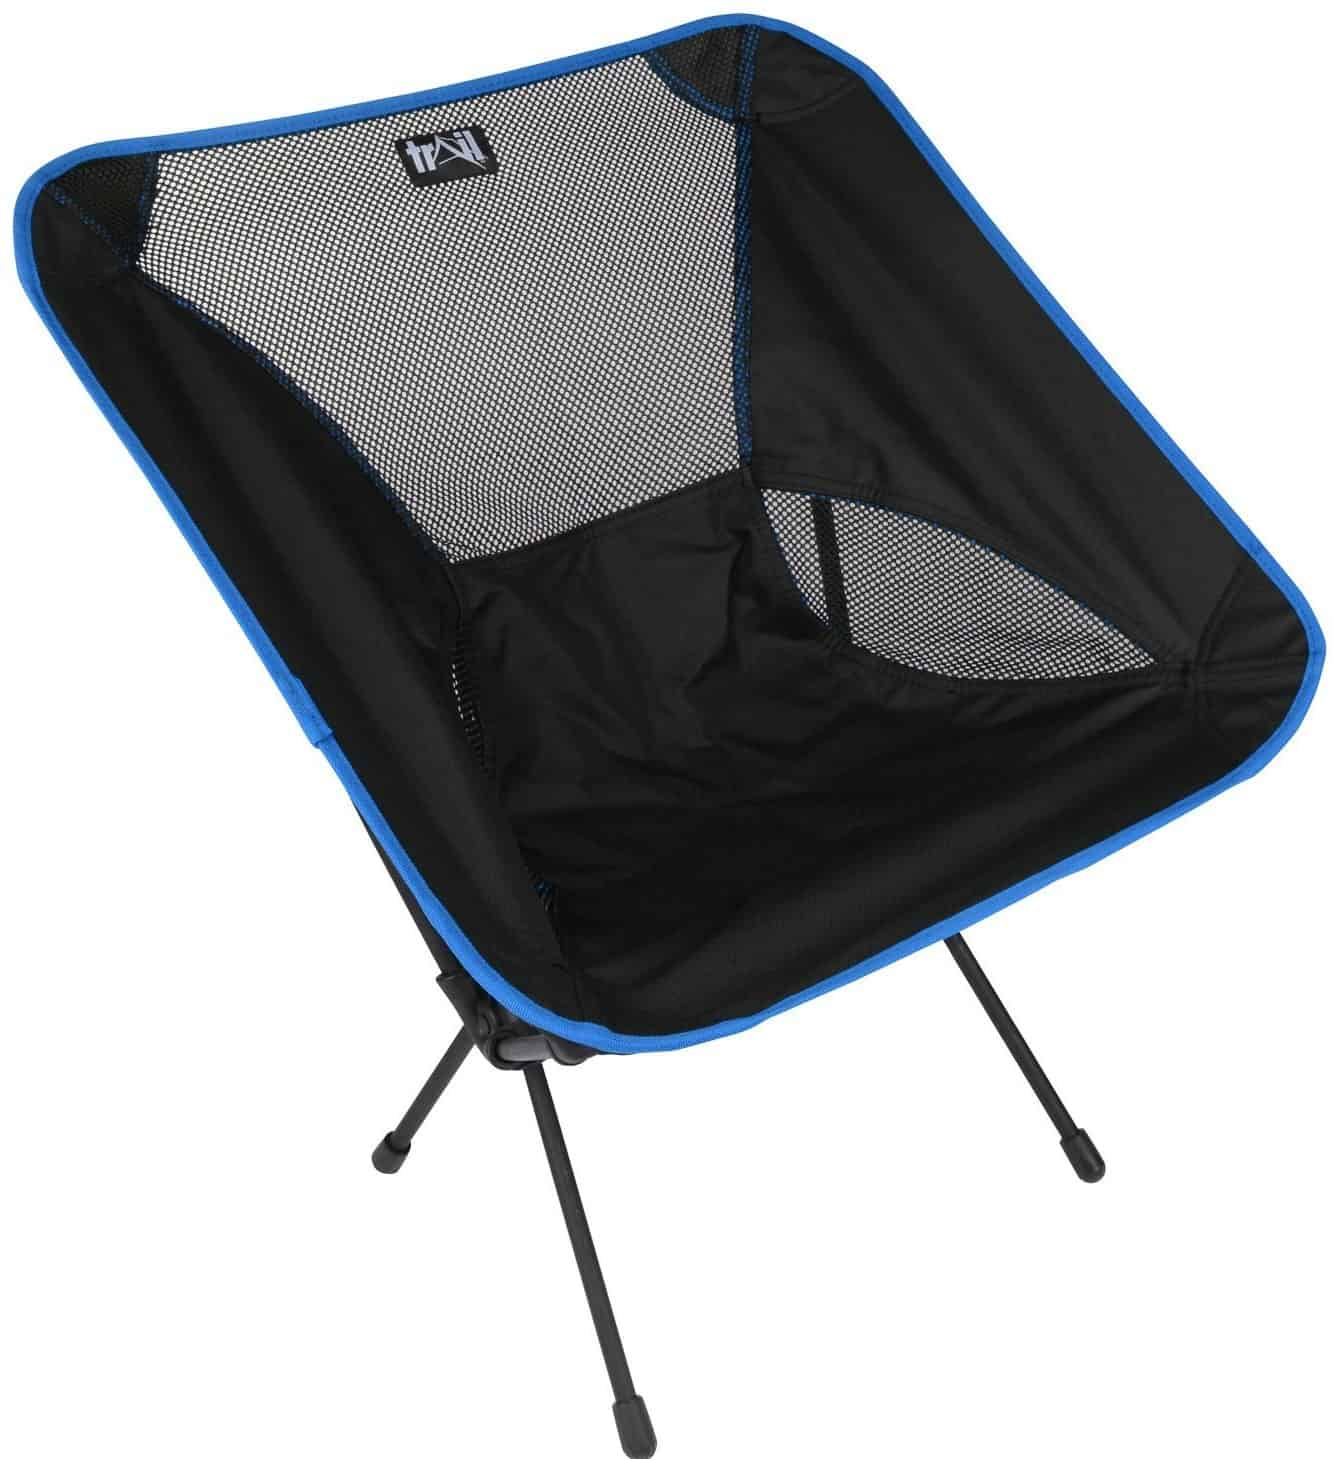 Camping Chair Reviews What are the Best Camping Chairs 2018